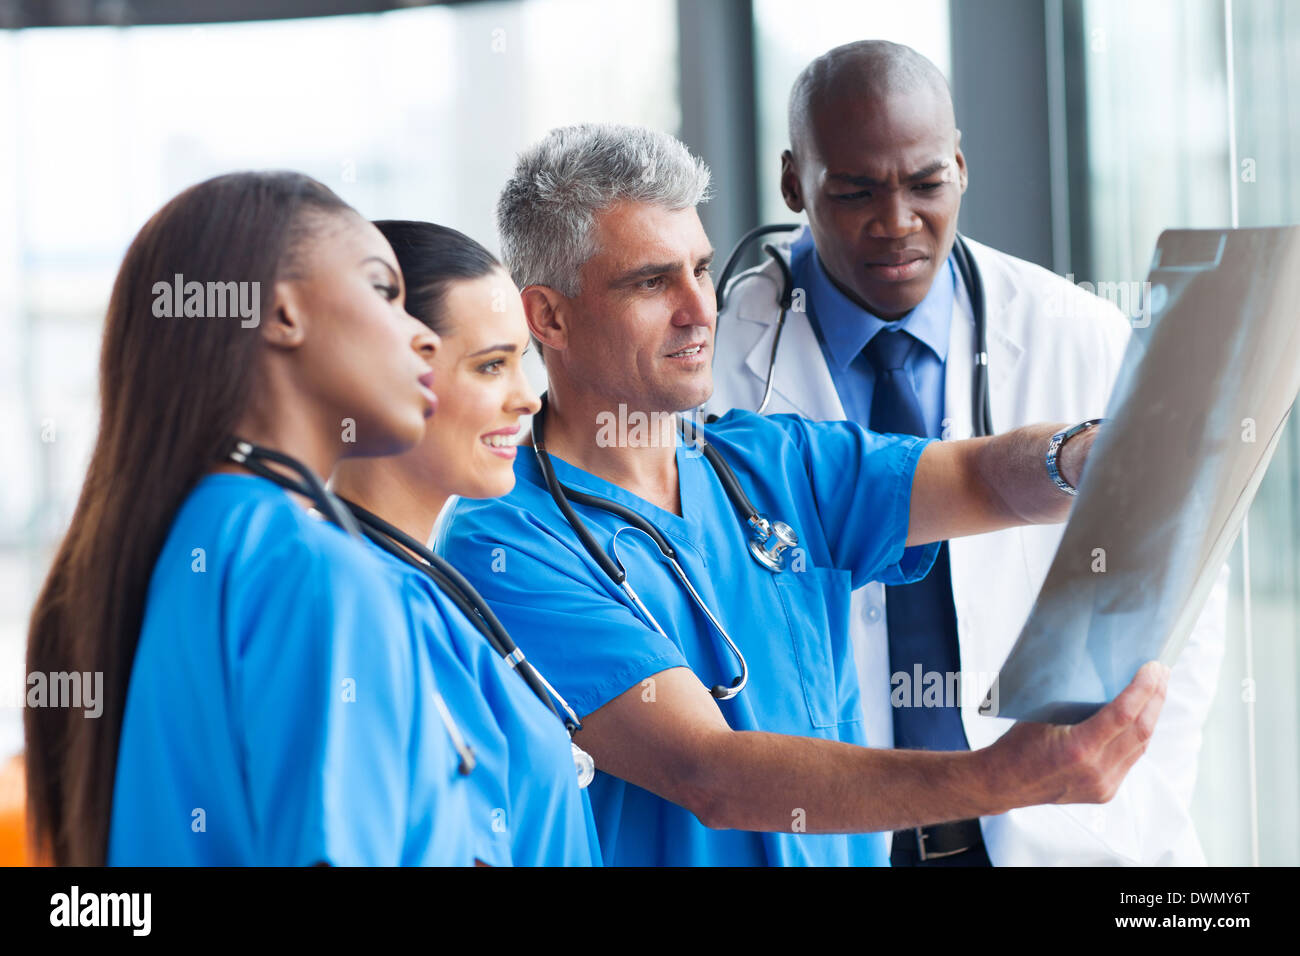 group of doctors looking at patient's x-ray - Stock Image